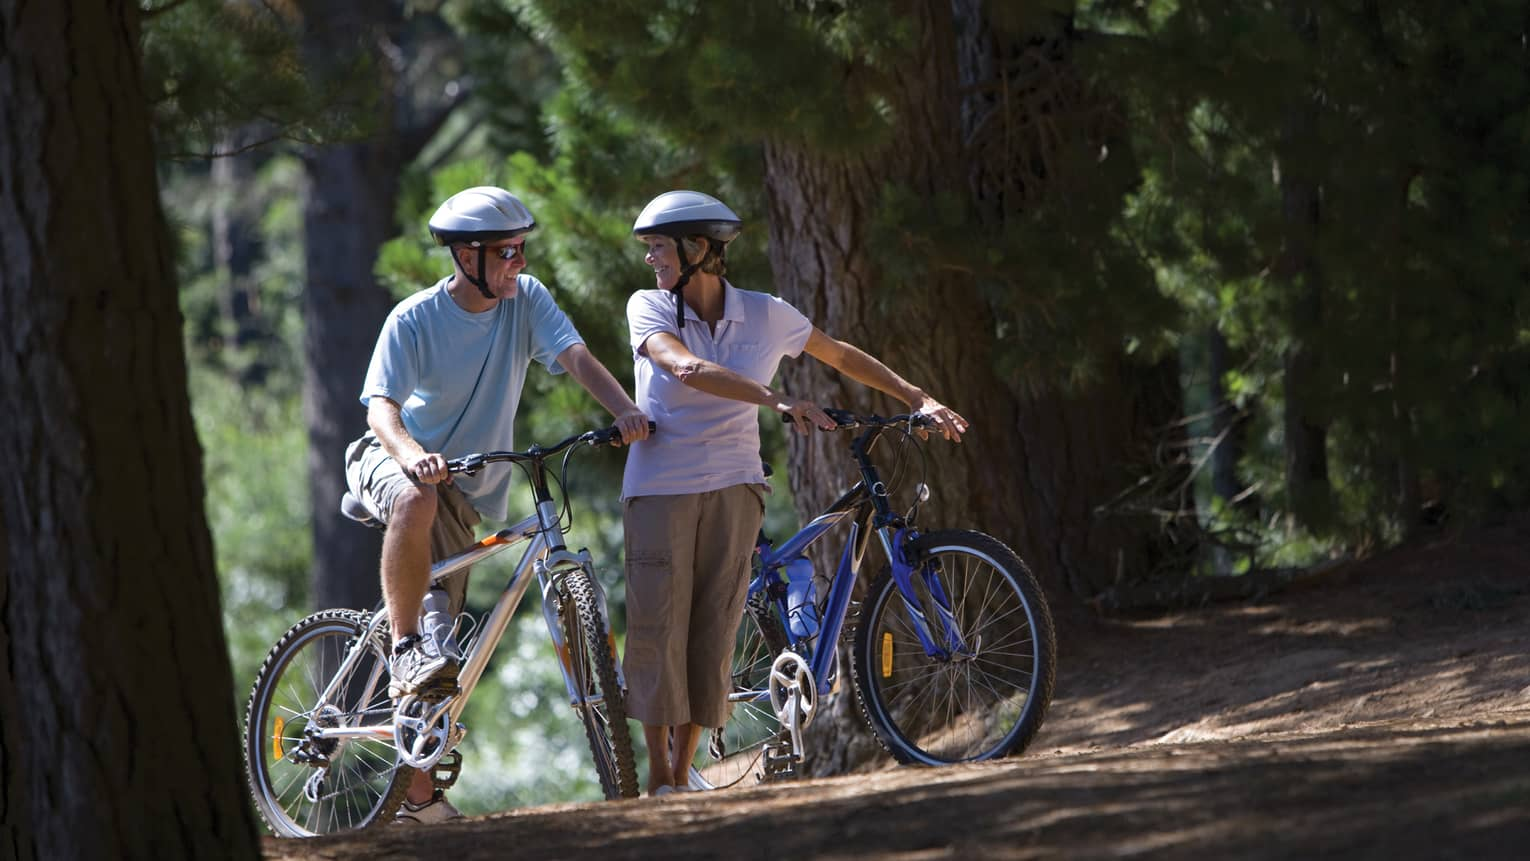 Smiling man and woman wearing helmets, sunglasses pause with their bicycles on forest path